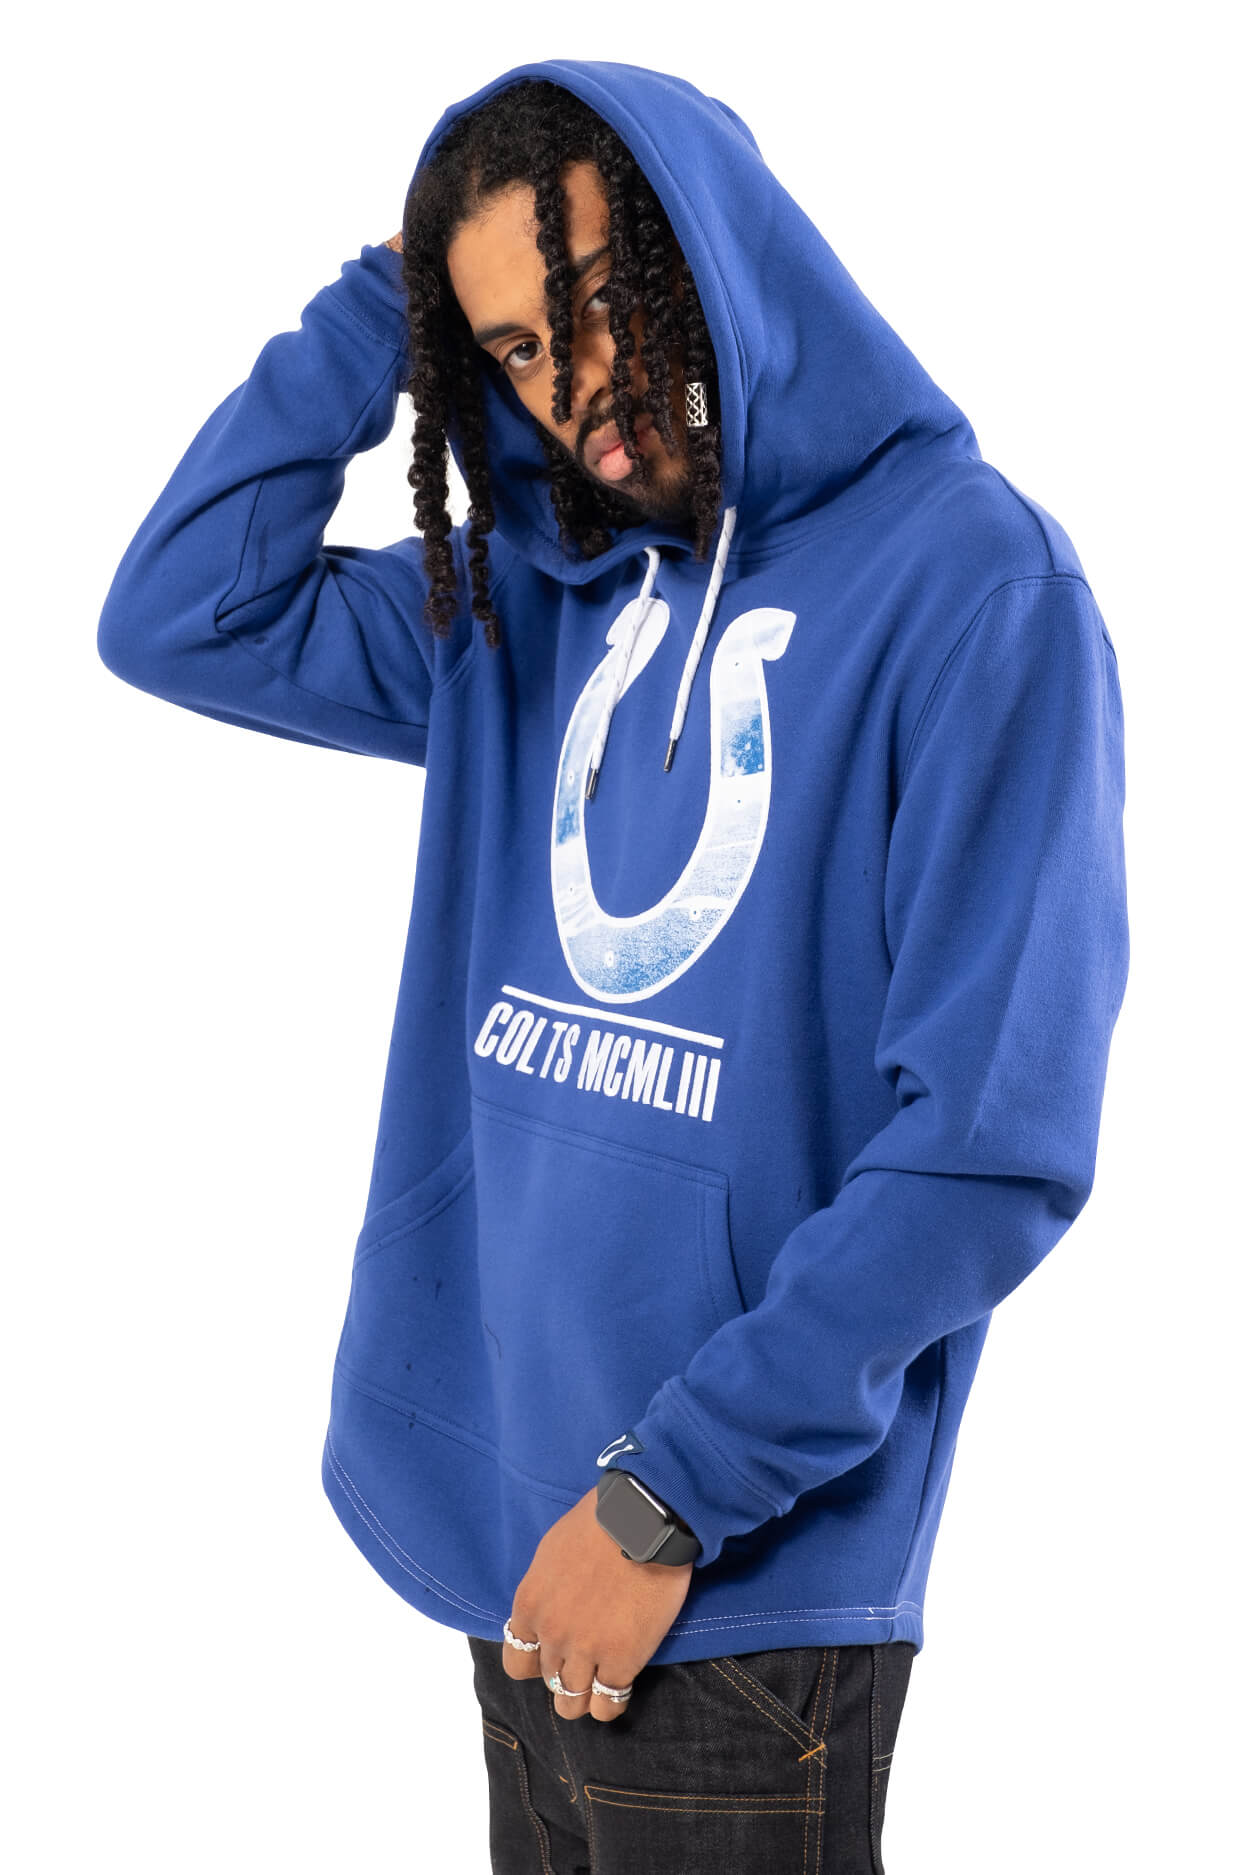 NFL Indianapolis Colts Men's Embroidered Hoodie|Indianapolis Colts